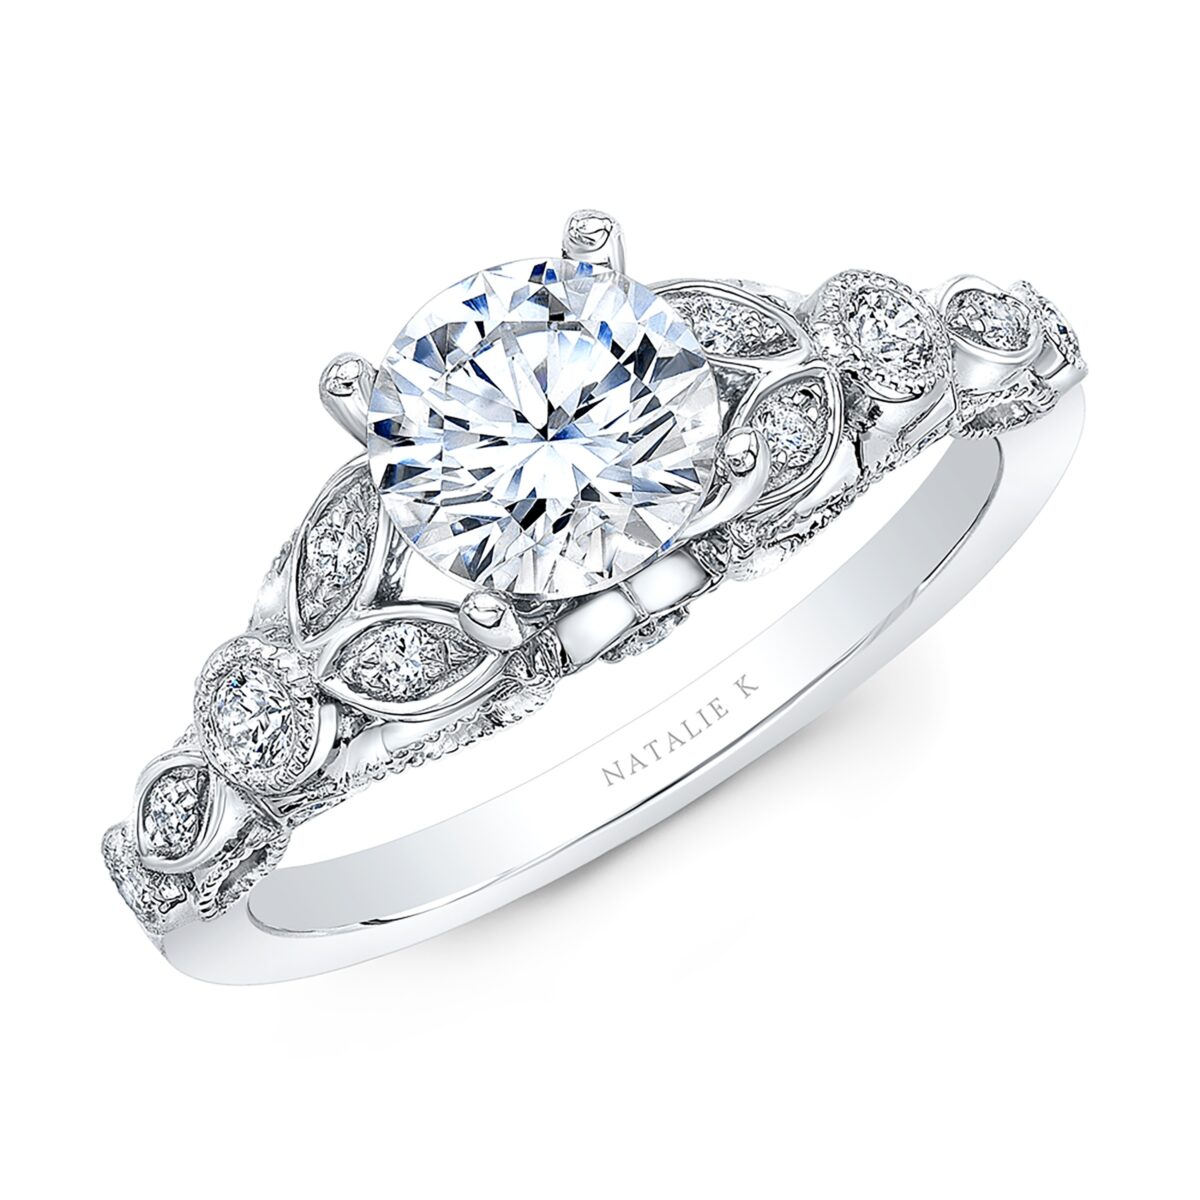 ipty design custom gallery engagement diamond leaf fullxfull rings white gold photo ring il listing